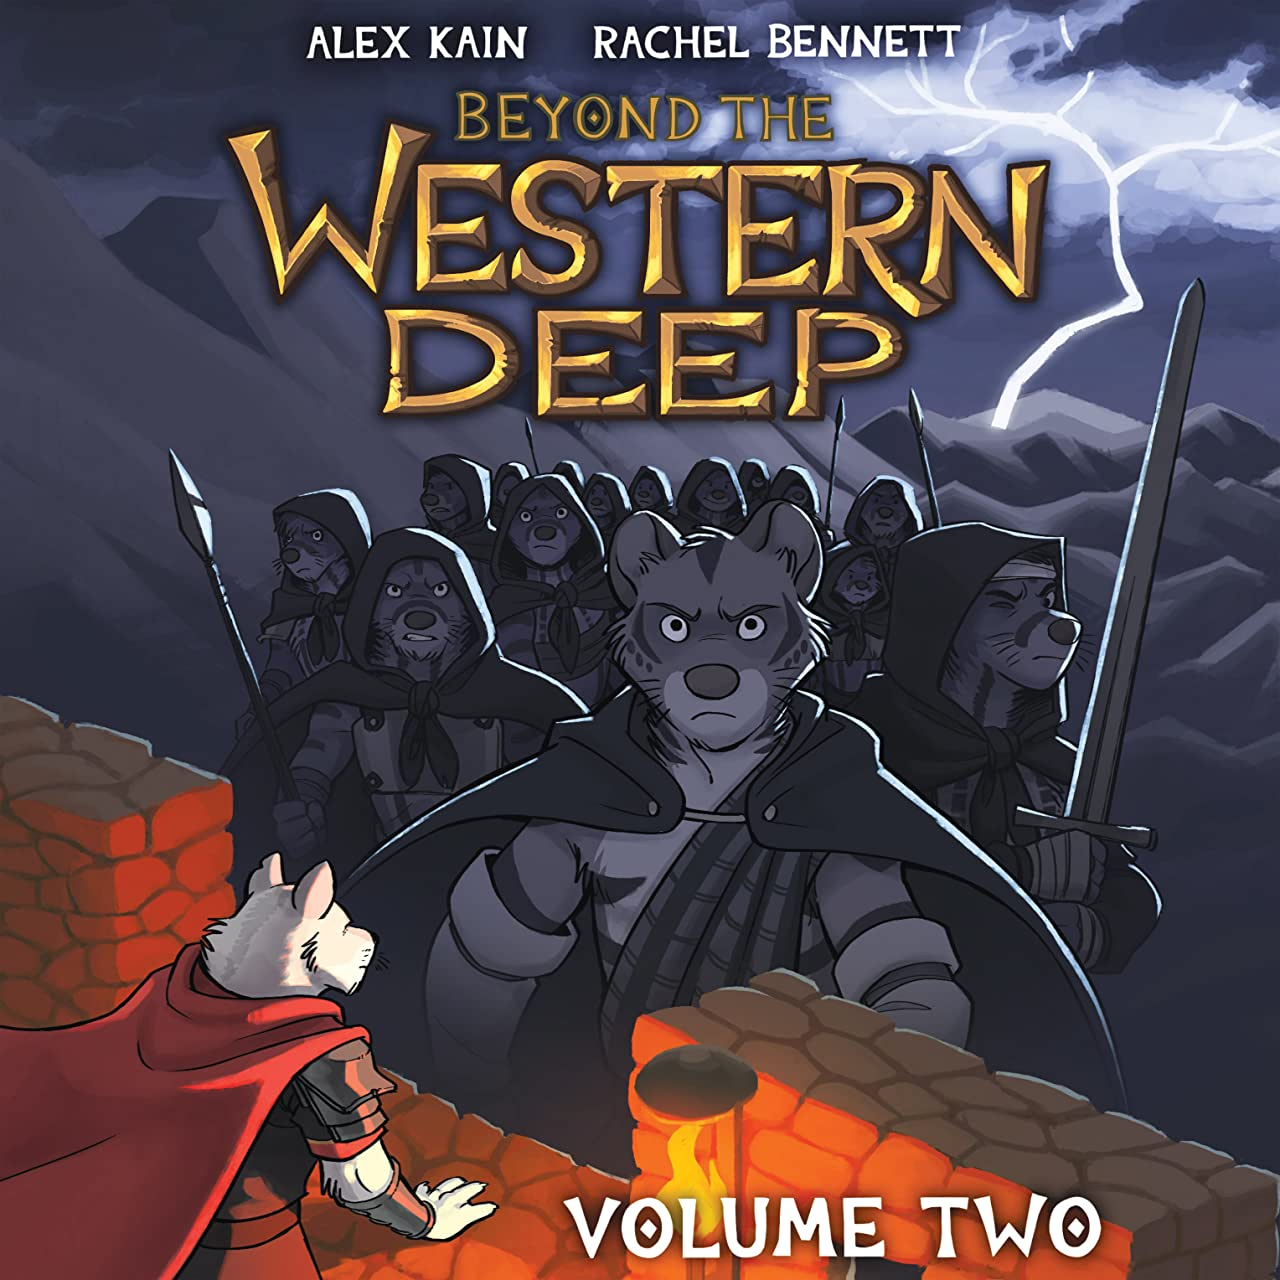 Beyond the Western Deep Vol. 2